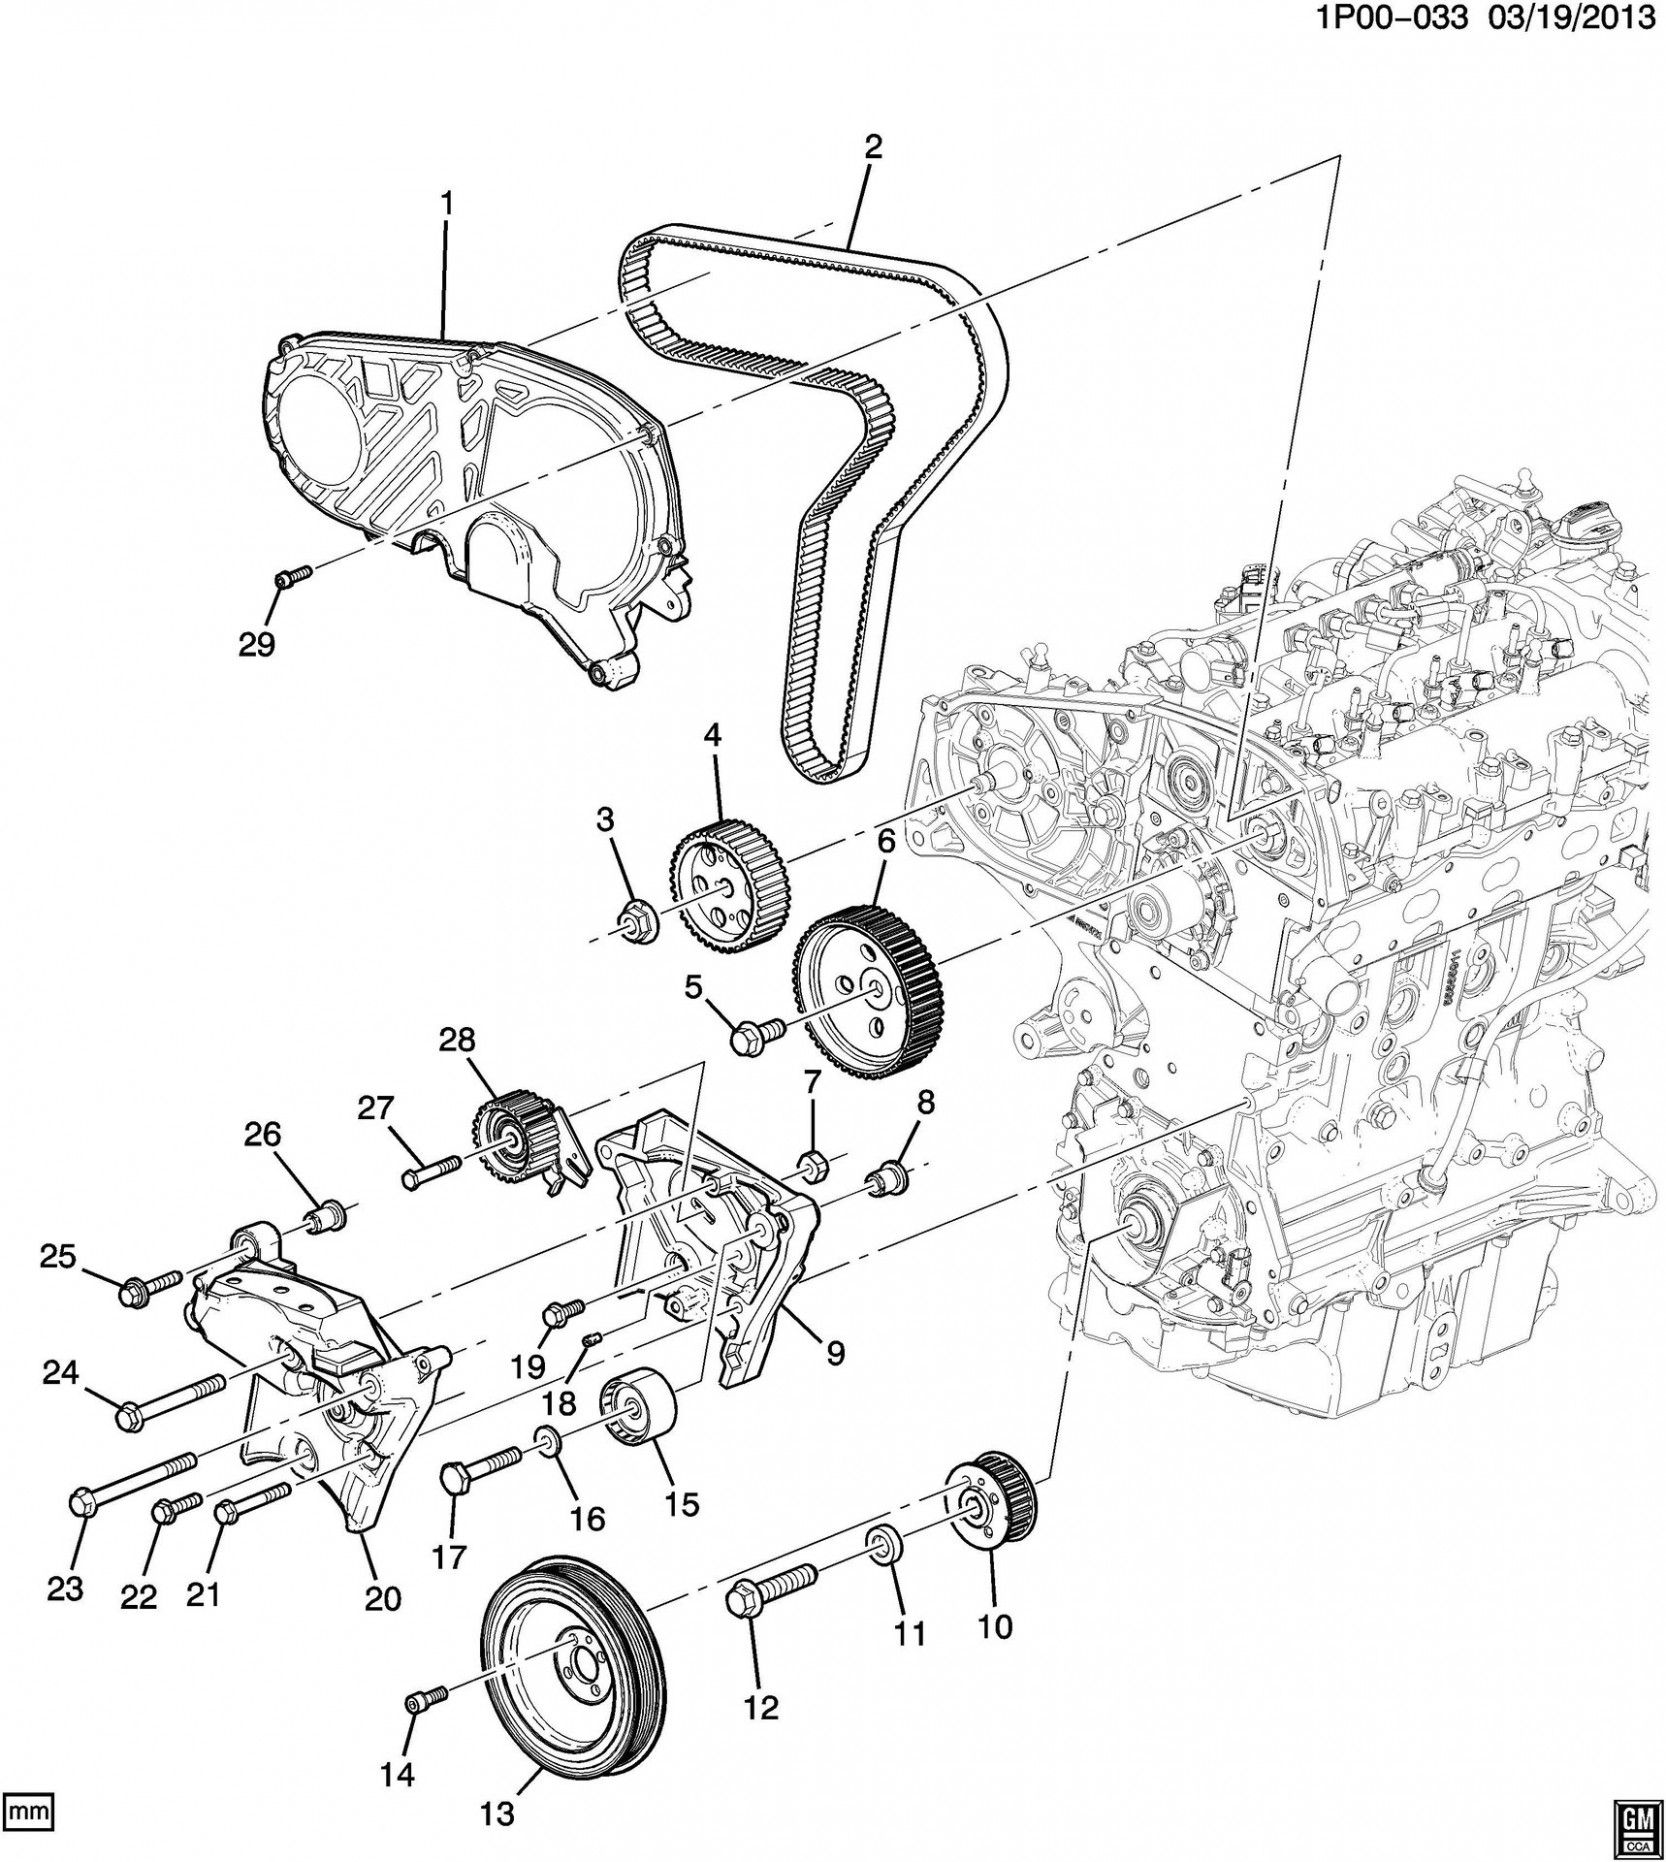 7 Chevy Cruze Diesel Engine Diagram di 2020